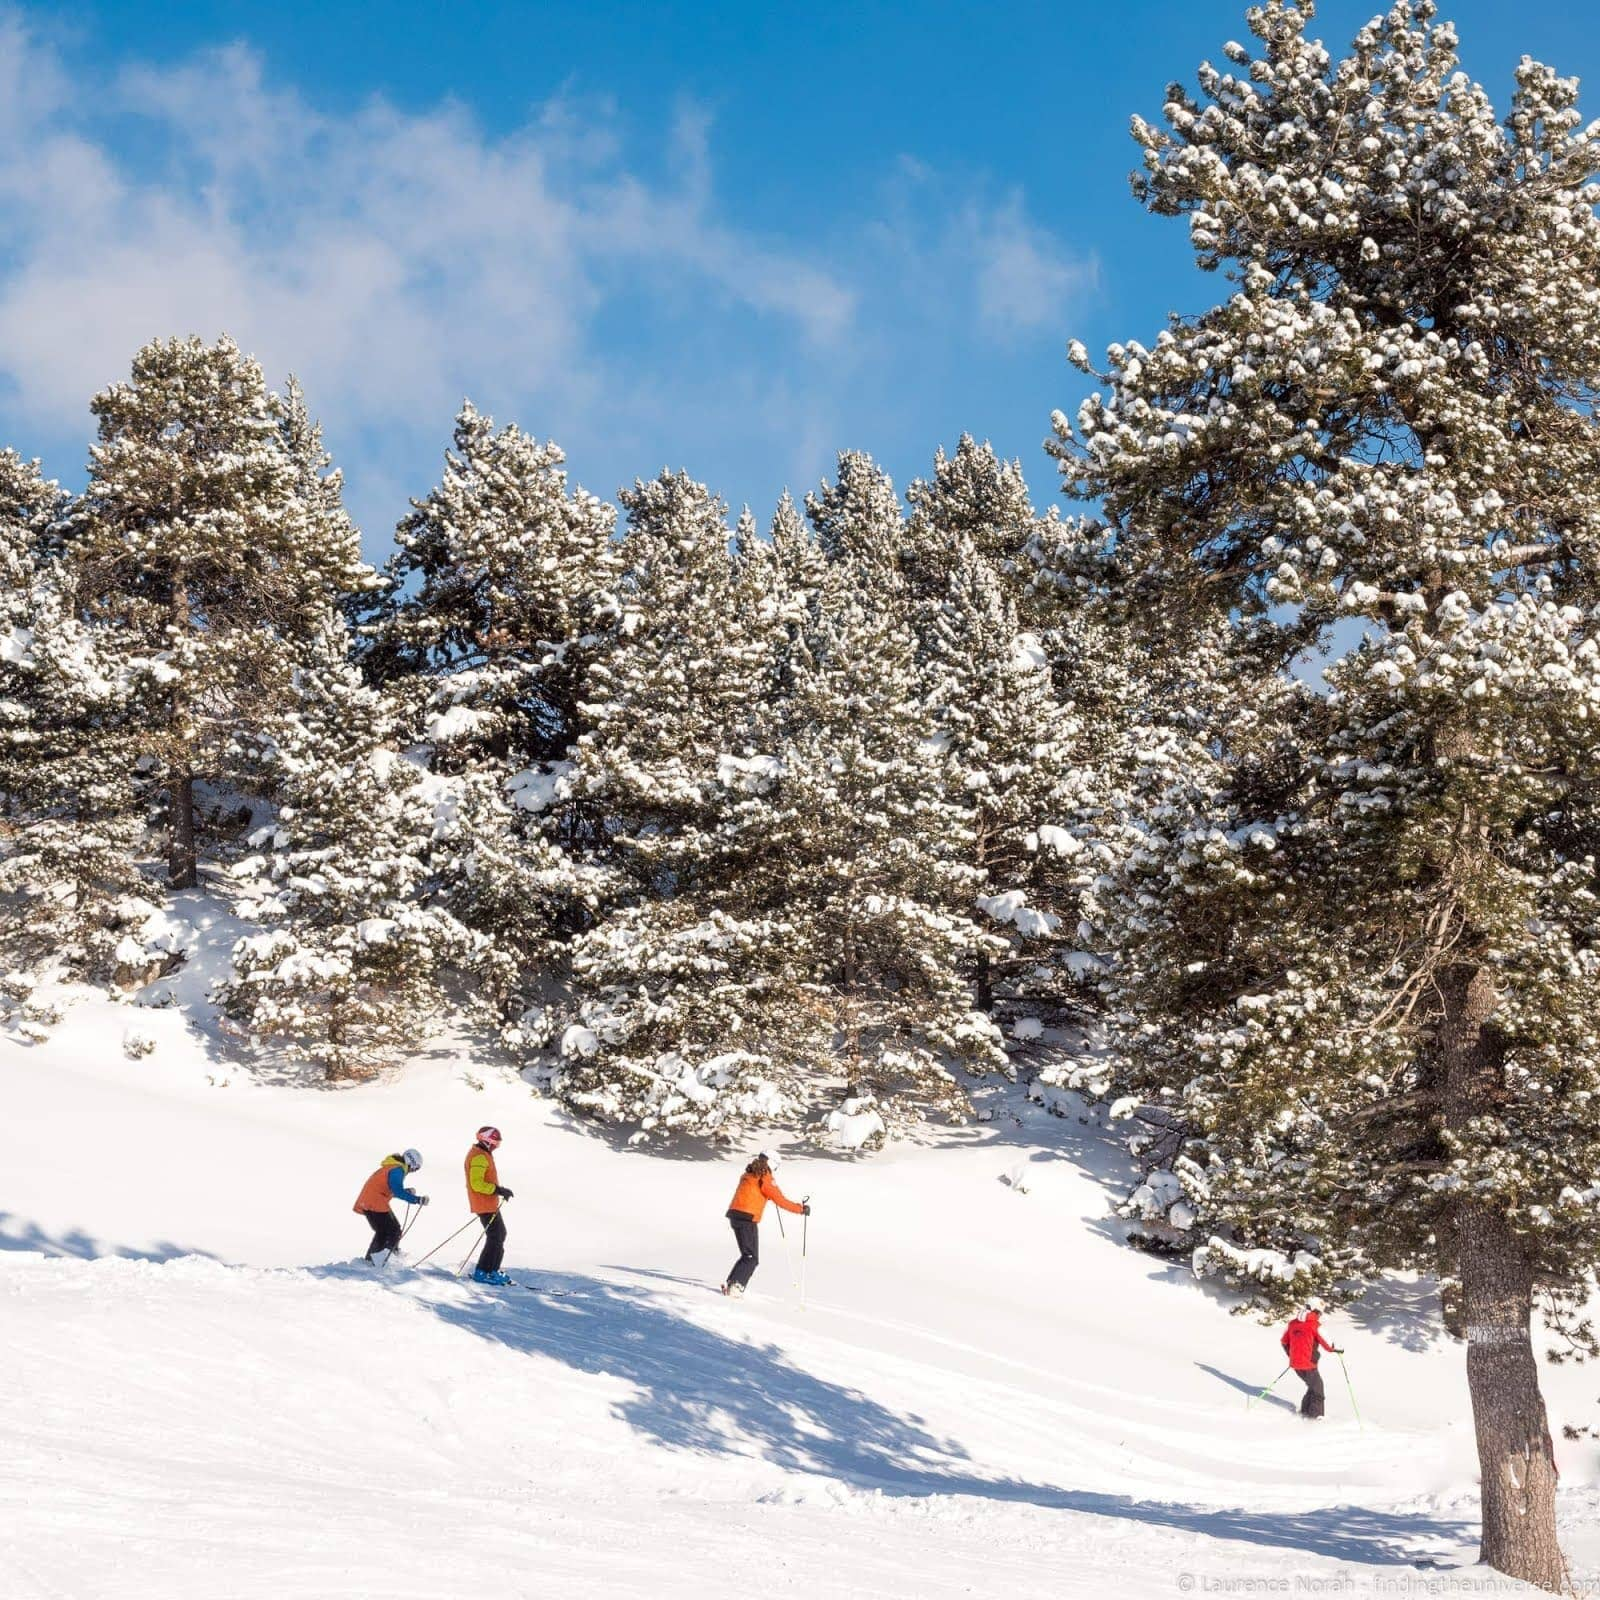 Long Stay Vacations In Spain: Skiing In Spain: The Spanish Pyrenees